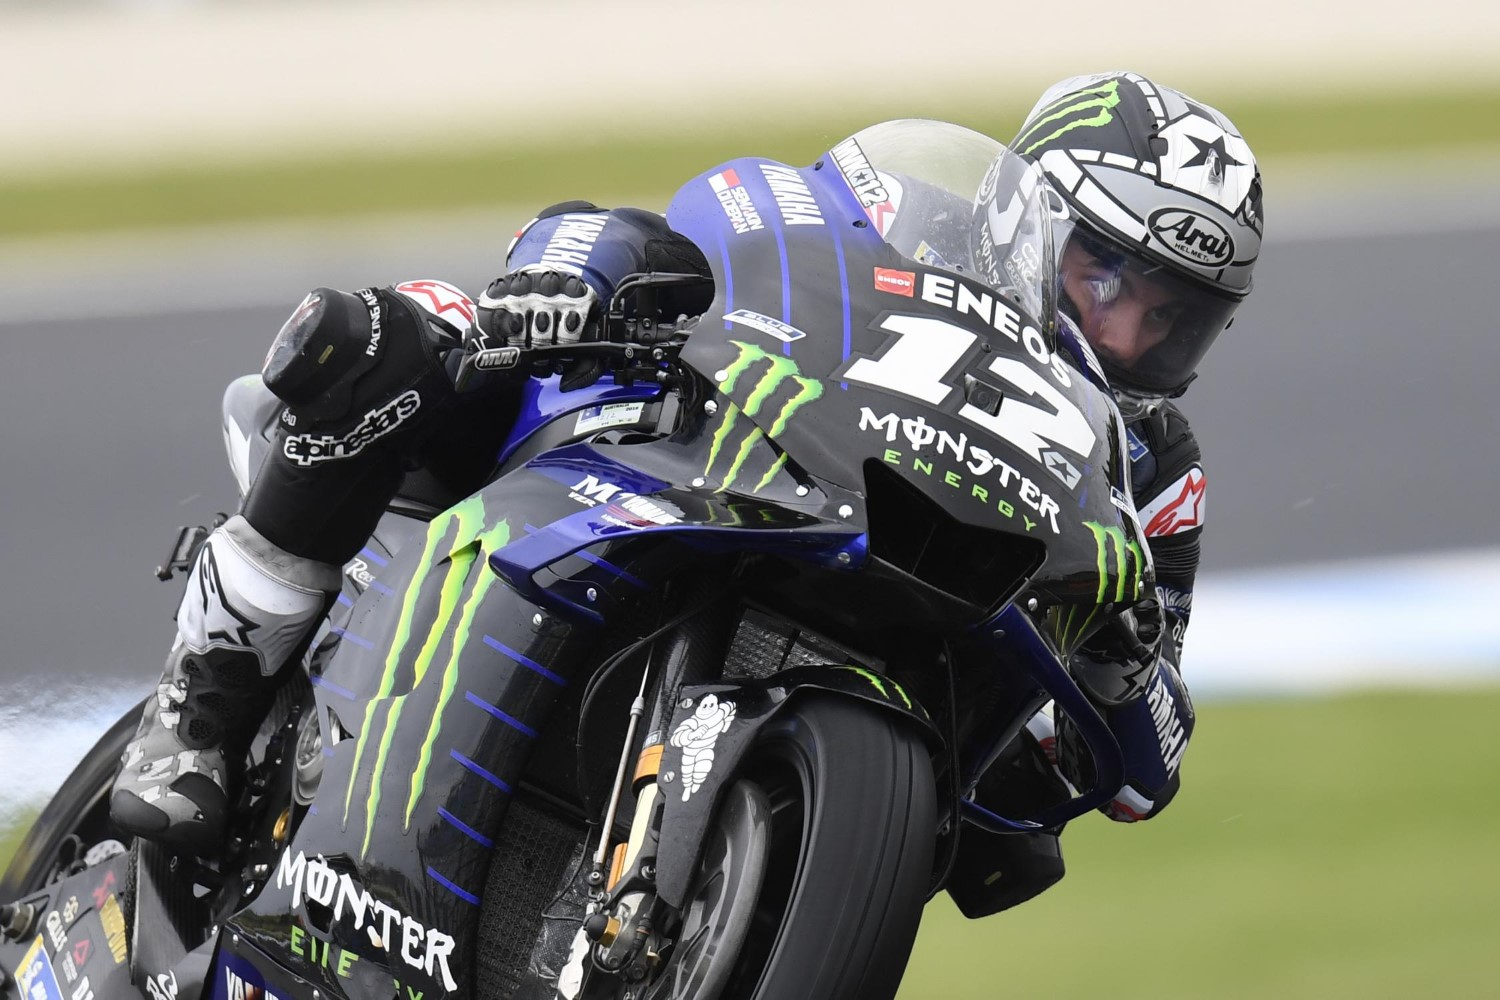 Maverick Vinales on rain tires